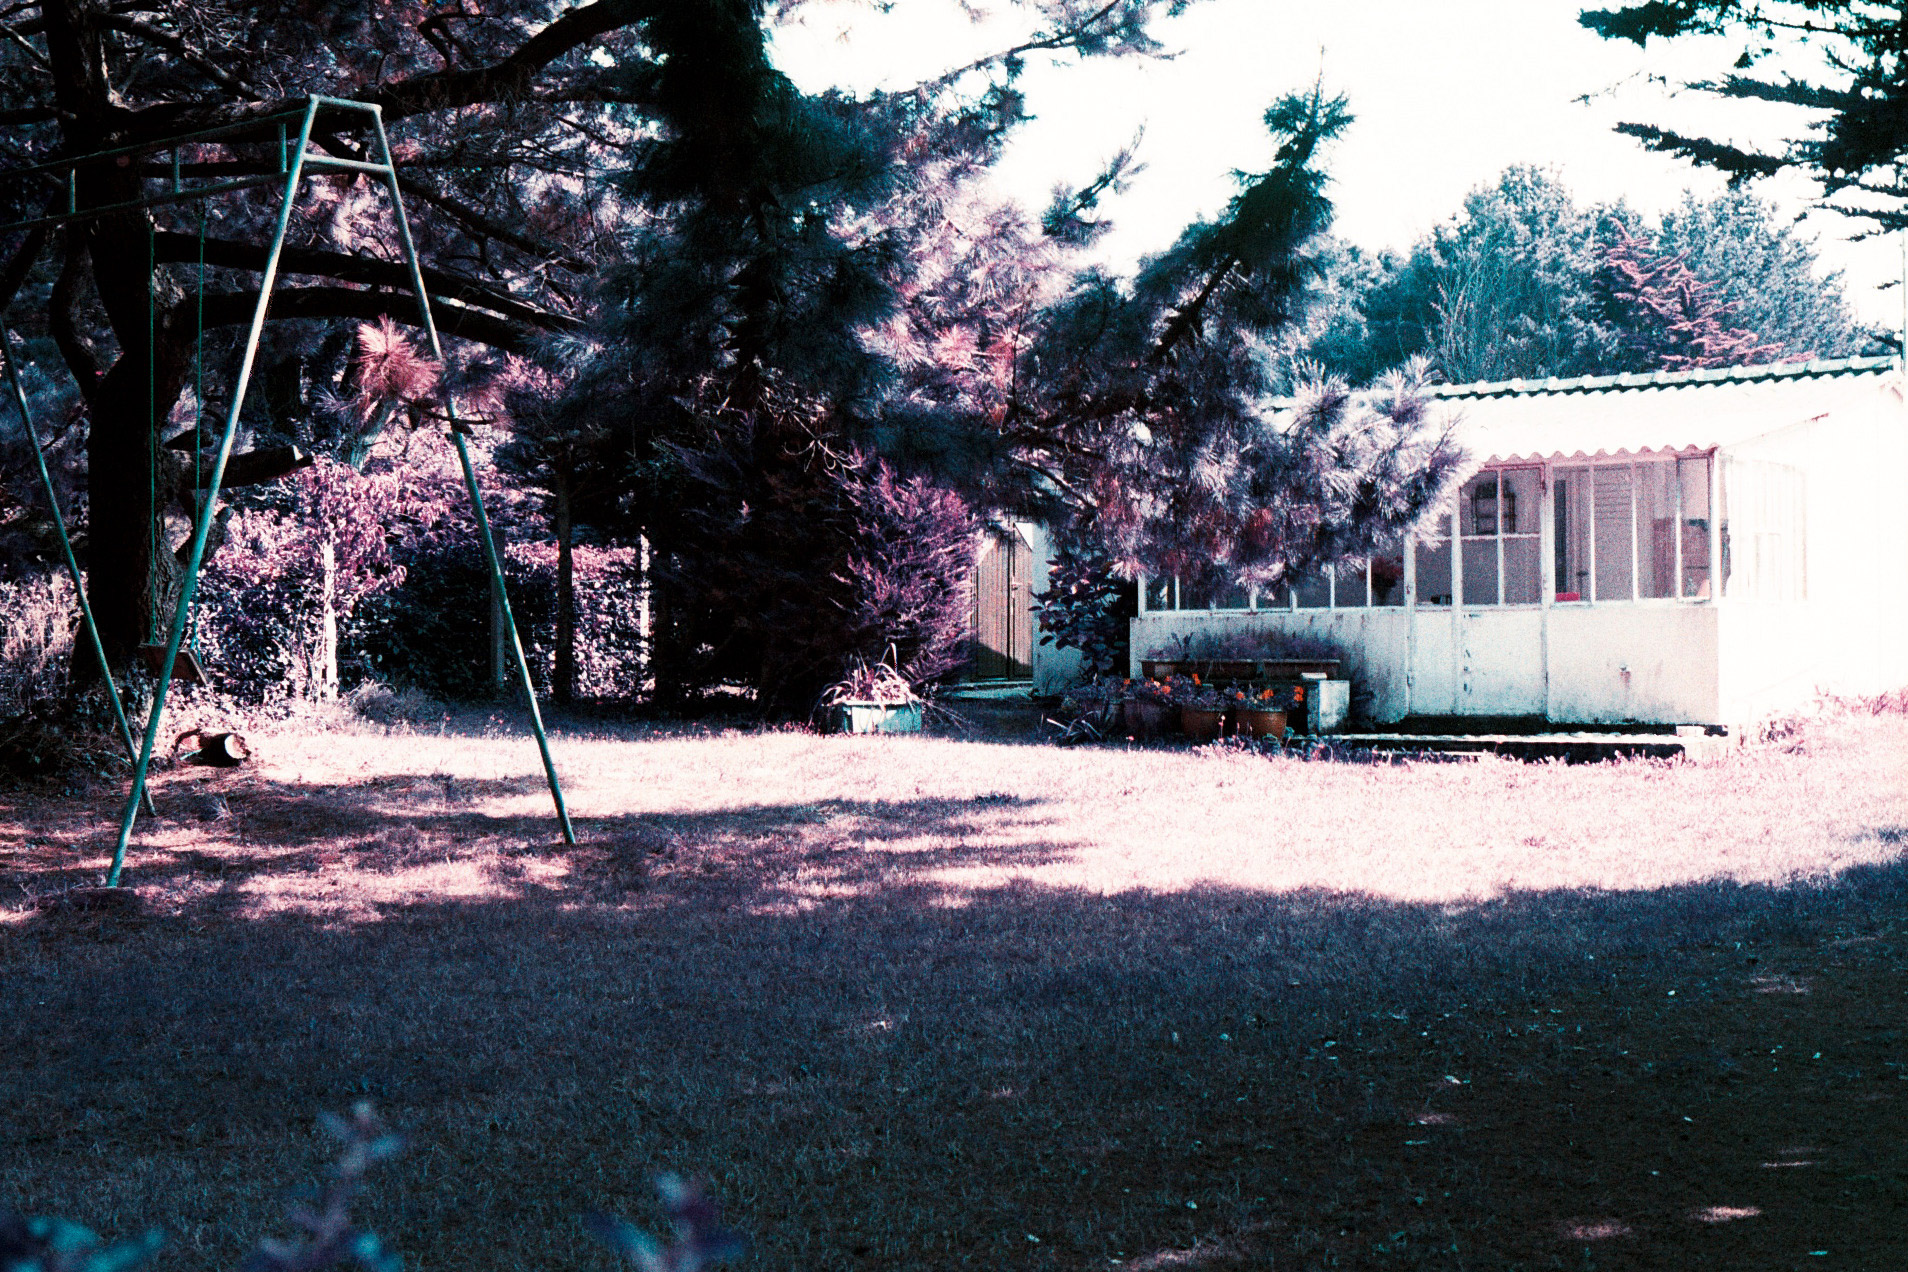 03_OM10_LOMOCHROME_PURPLE_XR_100_400_copyright_ThomasApp.jpg